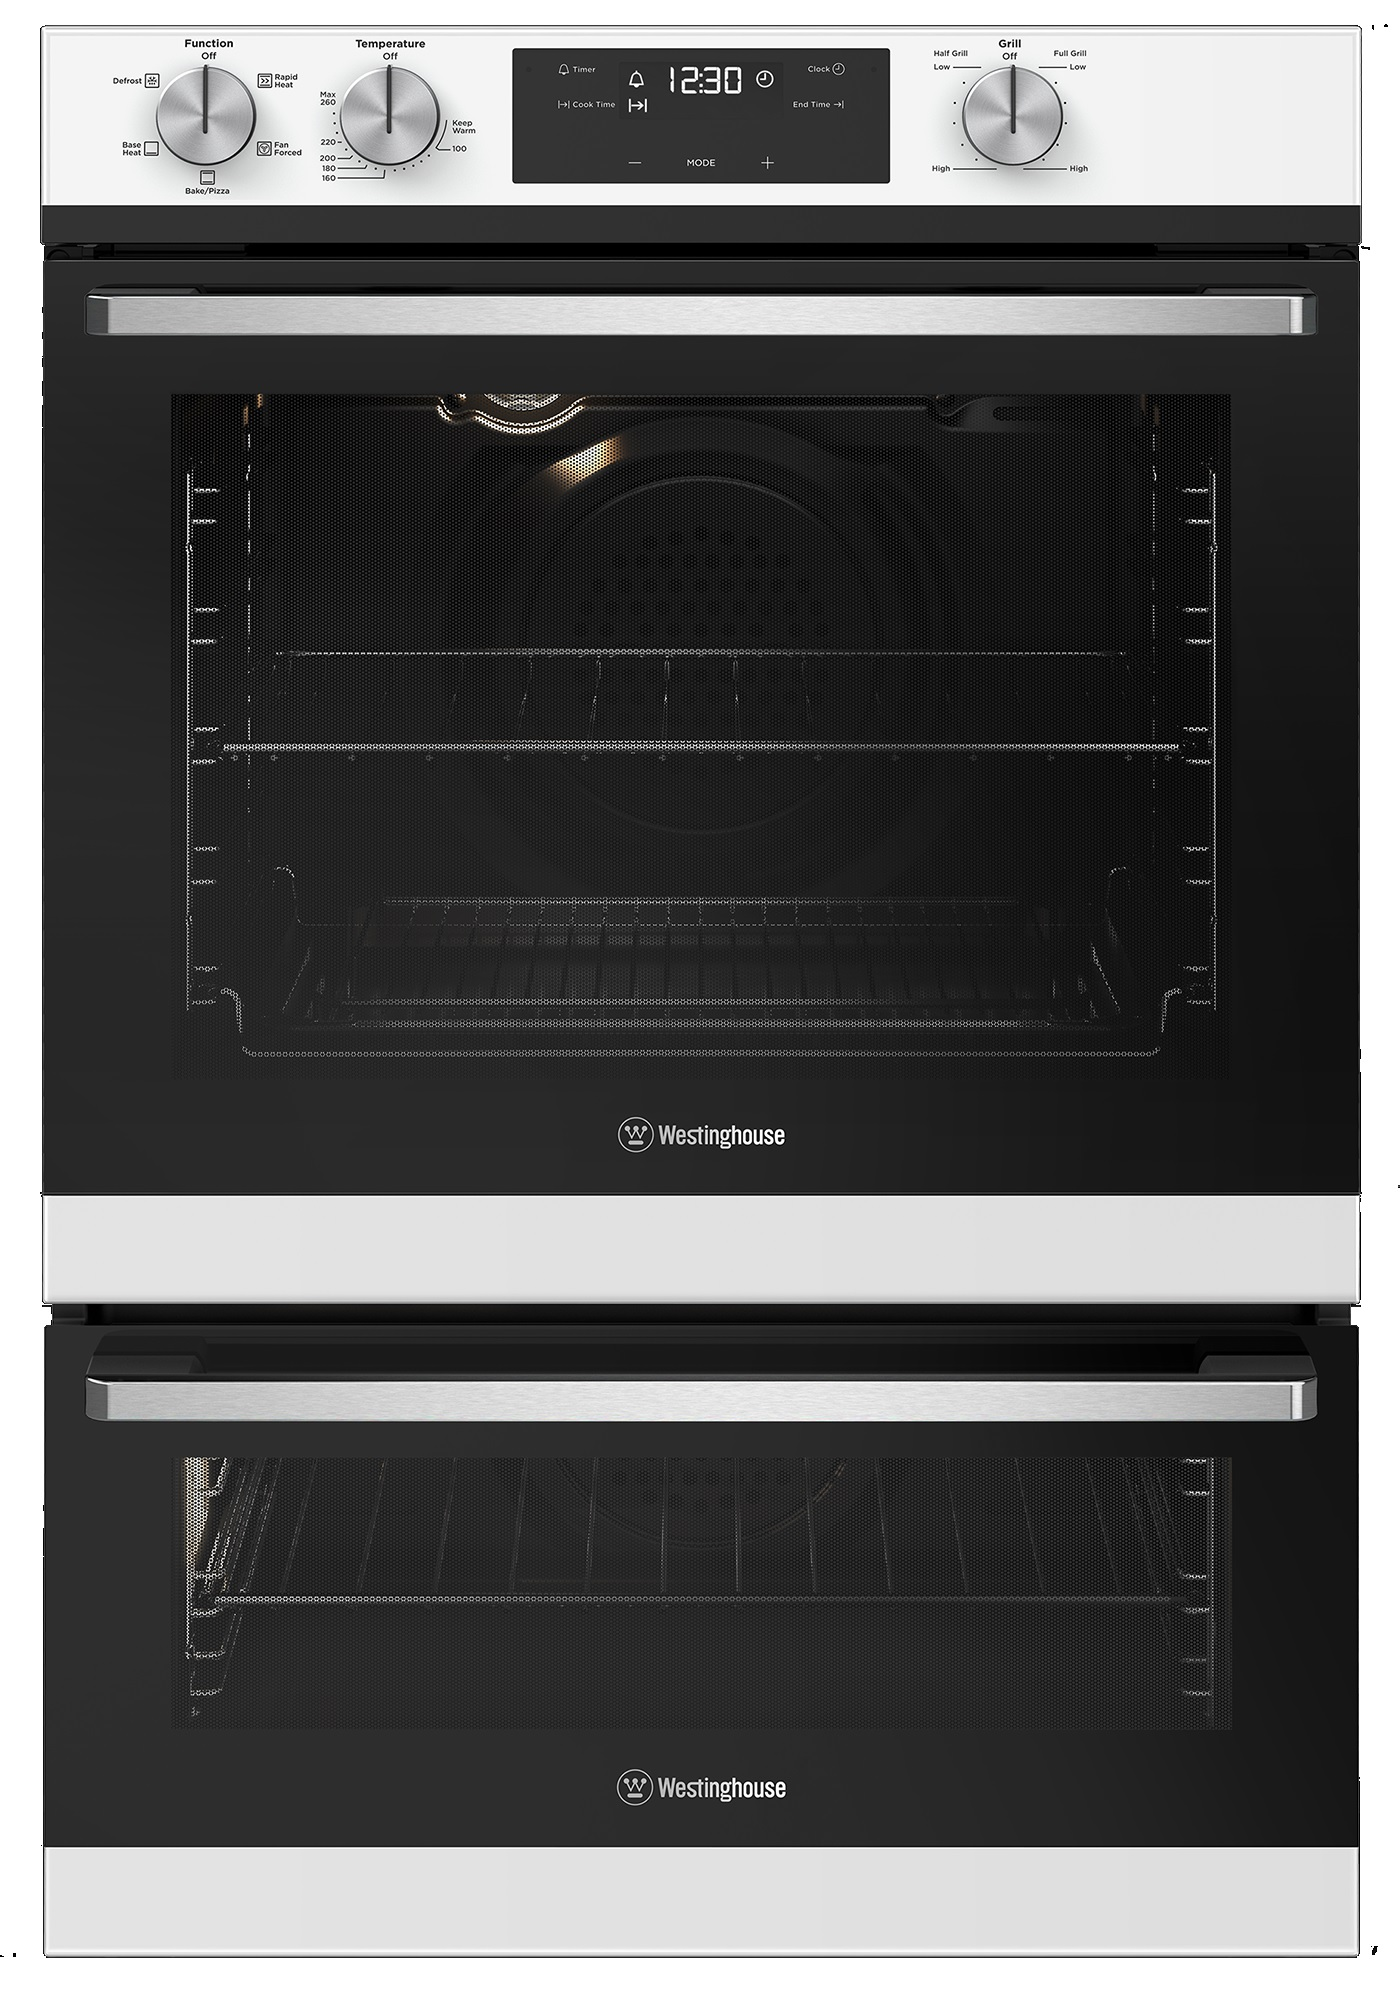 Westinghouse WVE665WC Built-In Oven